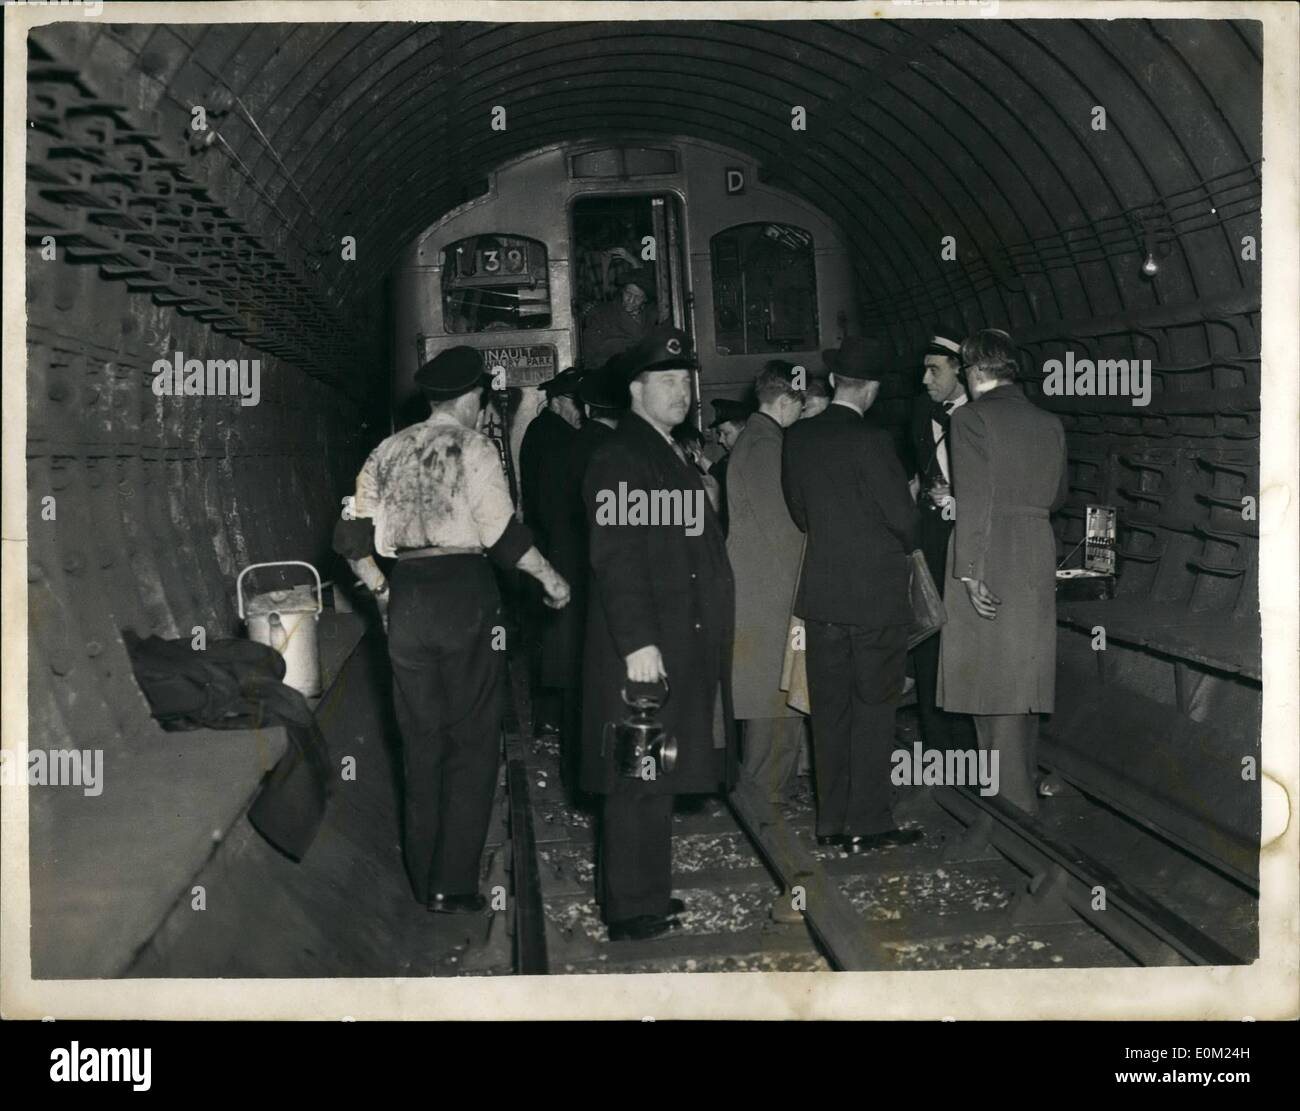 Apr. 04, 1953 - Nine dead in Tube disaster: Nine people were known today to have died in the Central Line tube disaster at Stratford last night the worst in London's Underground history. It was the second coach of the Baling Broadway Epping train which took the brunt of the crash. The train ran into the rear of another train travelling from Greenford to Hainsult. Photo shows last night's scene as railway officials help passengers from the rear of one of the coaches after the crash at Stratford - Stock Image